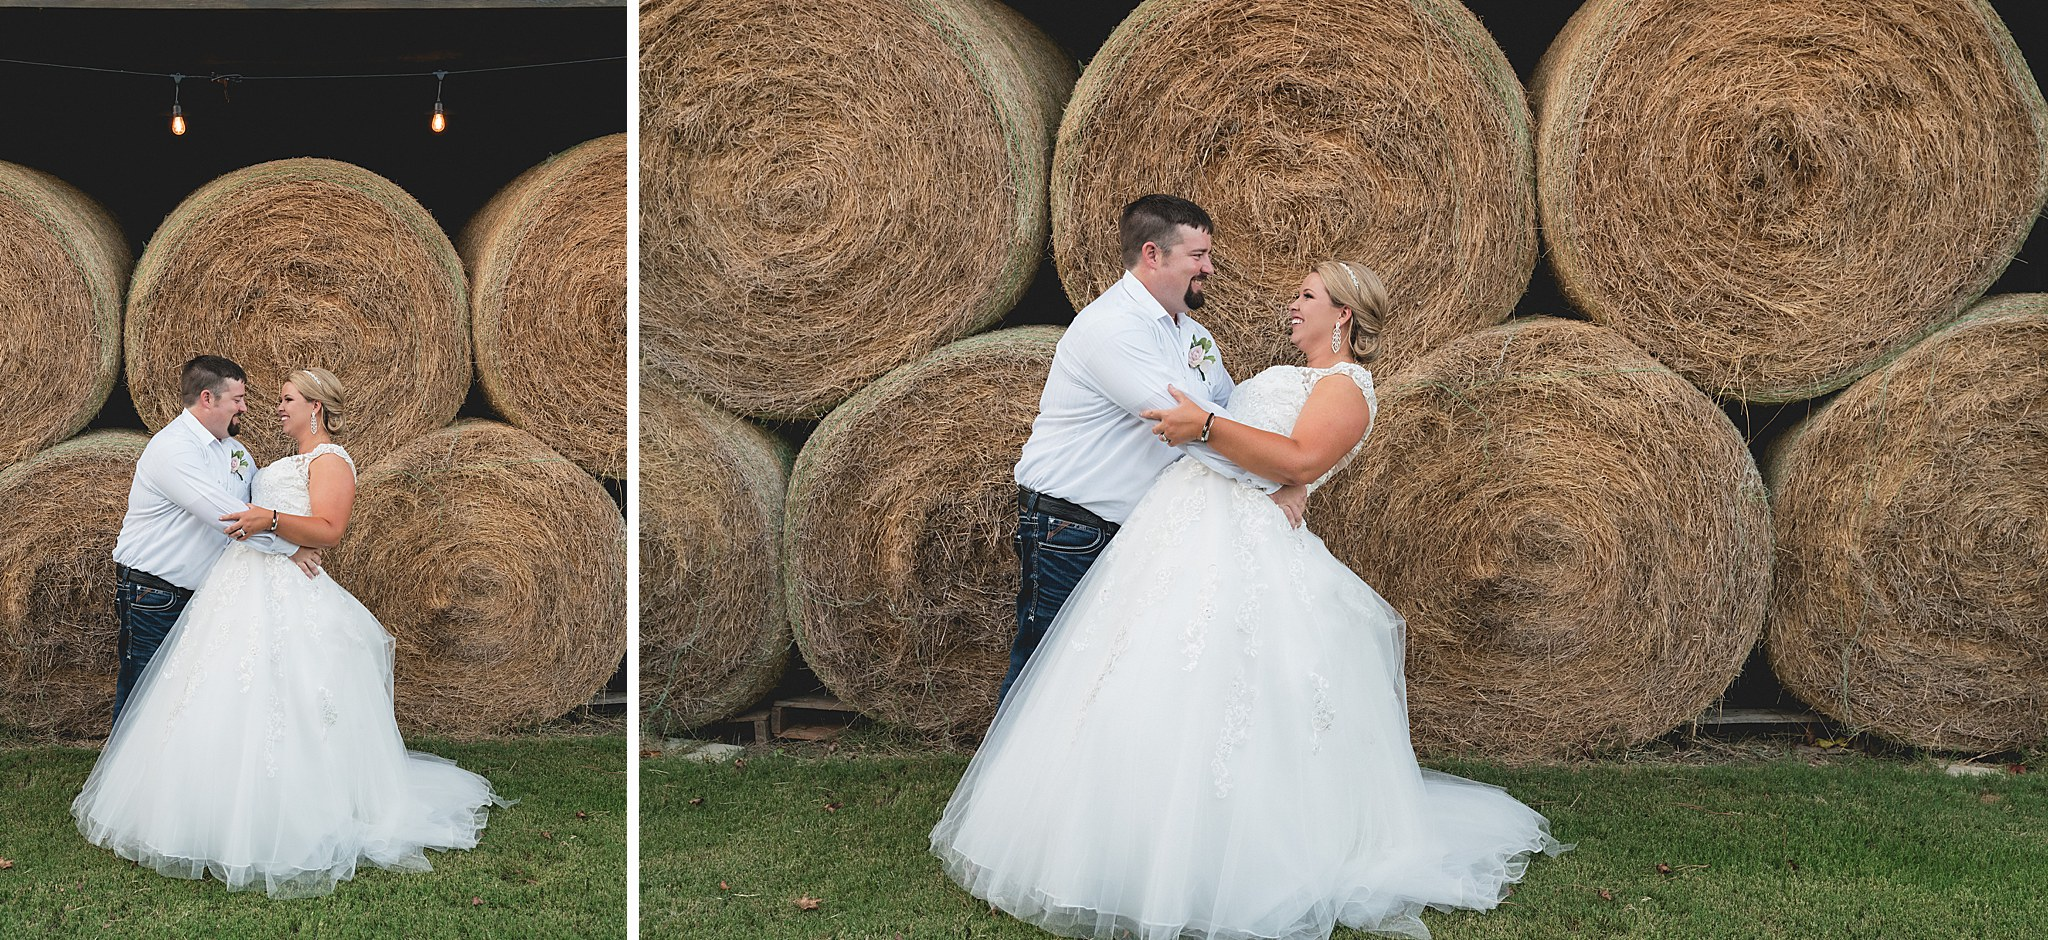 Paisley Barn Wedding Photographer 097.jpg